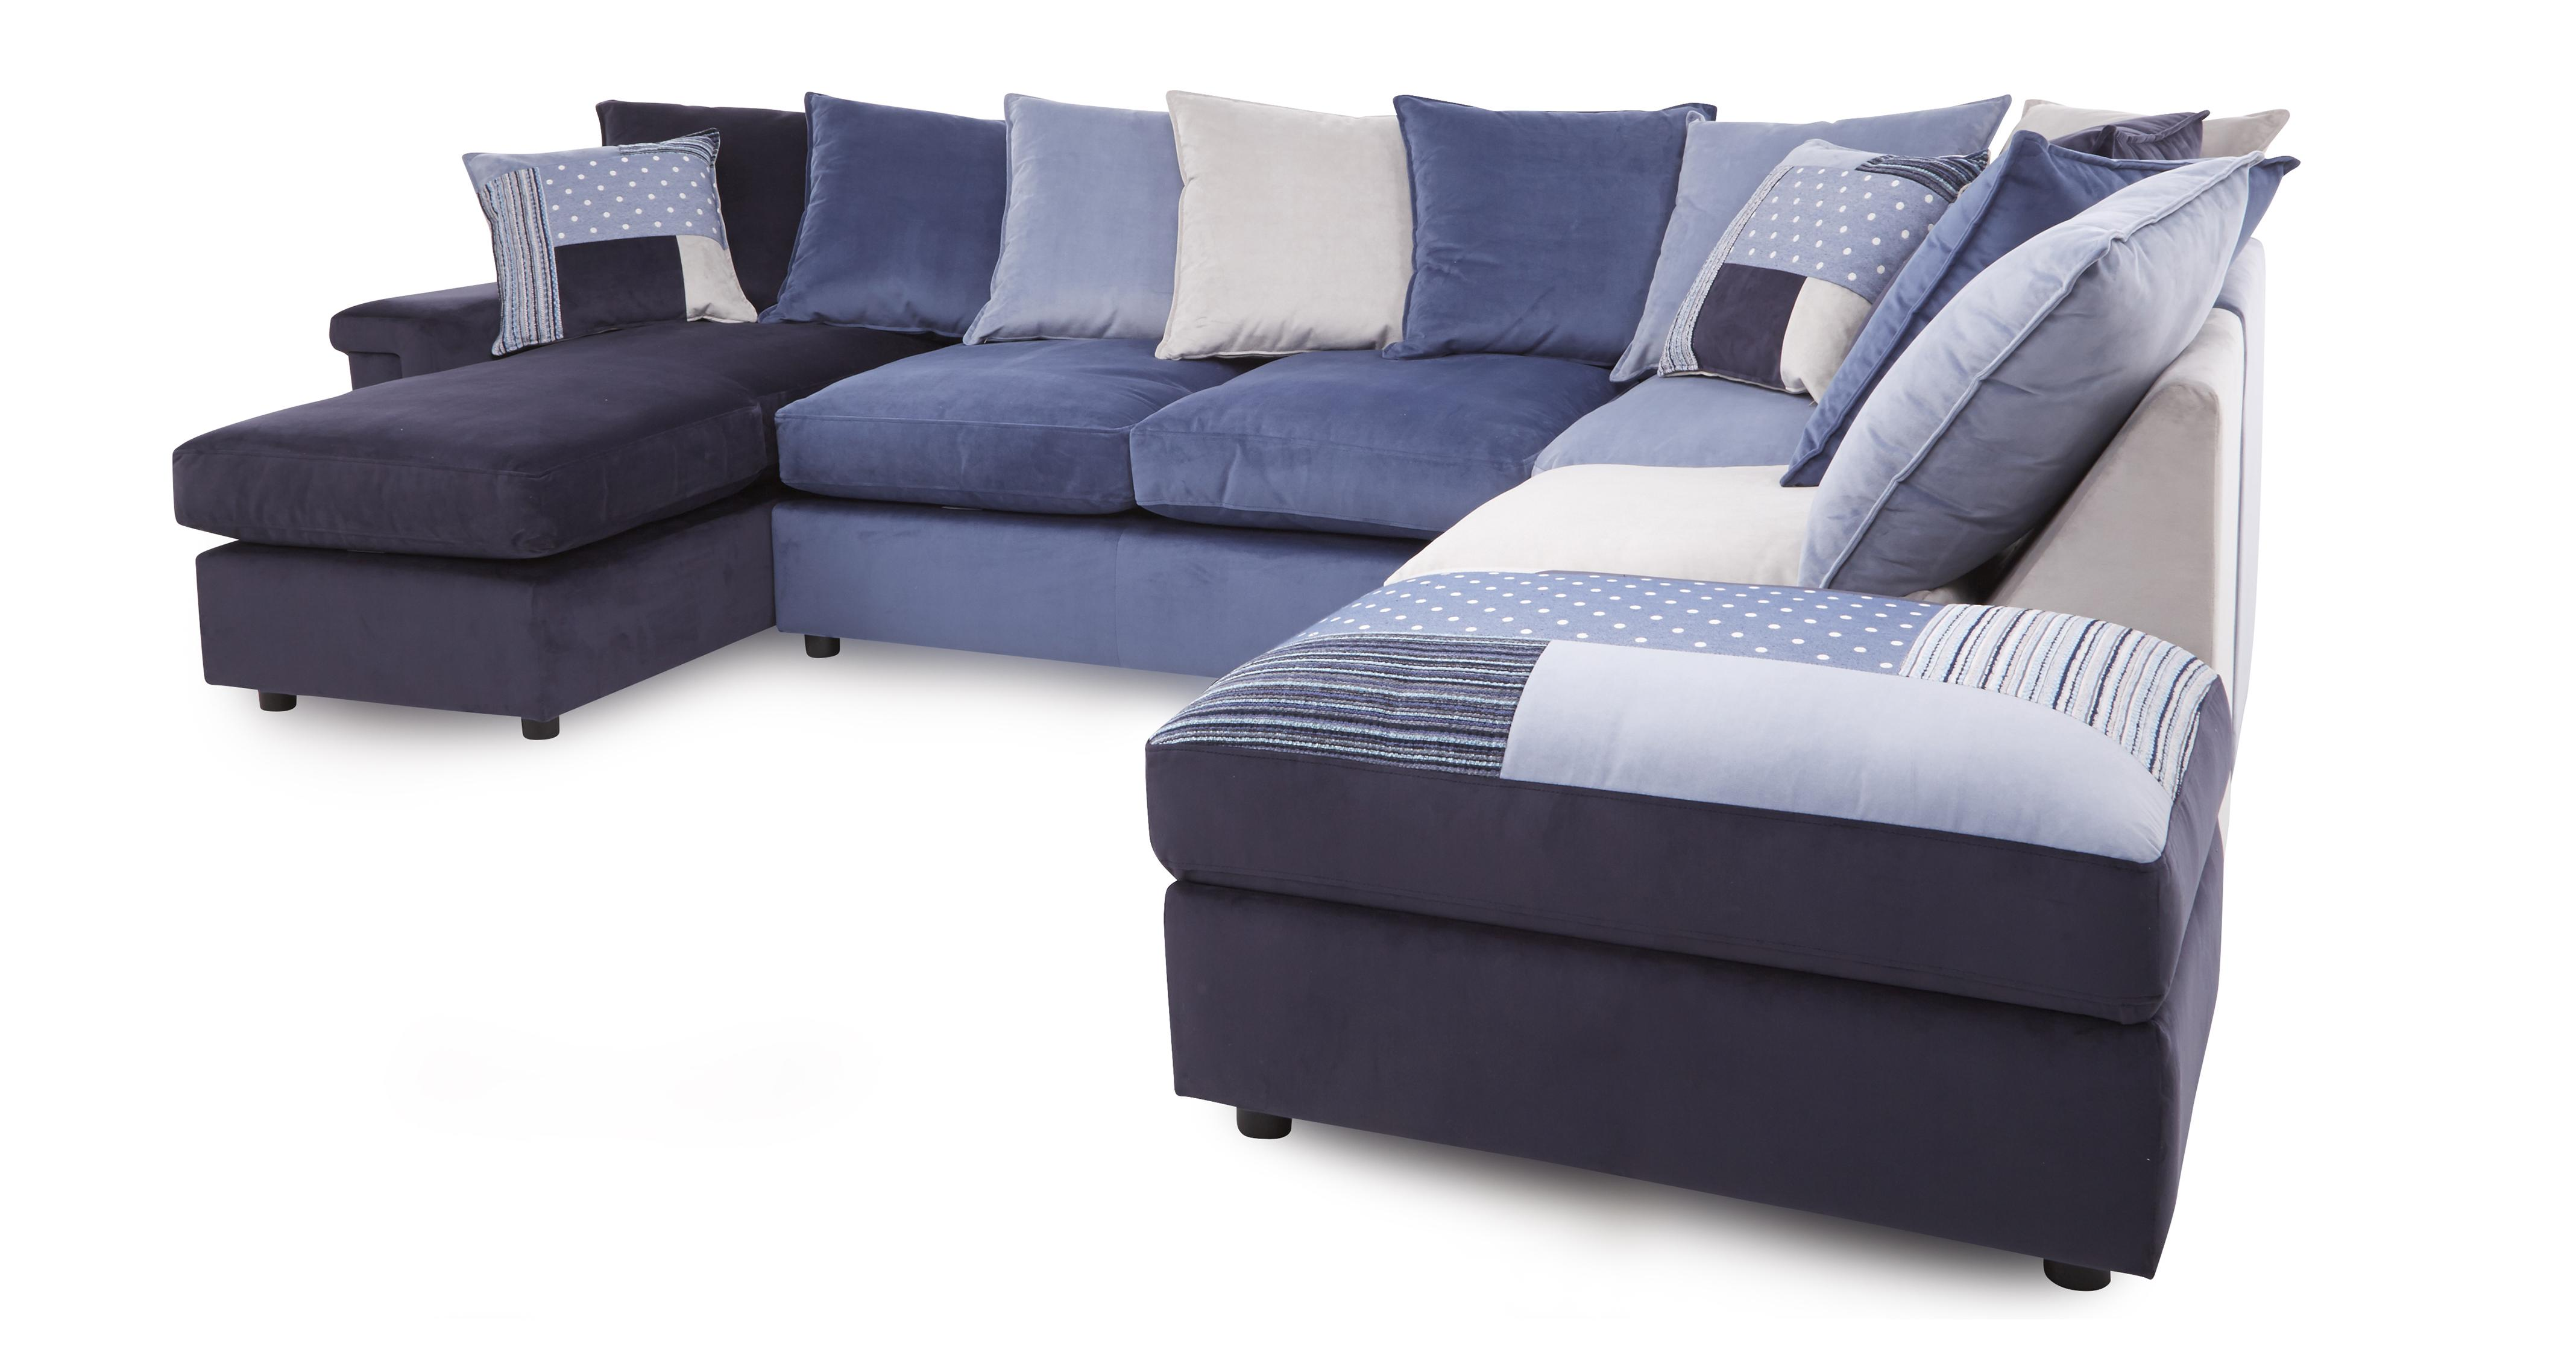 how to wash dfs sofa cushions wicker outdoor hobby set inc chaise corner armchair footstool